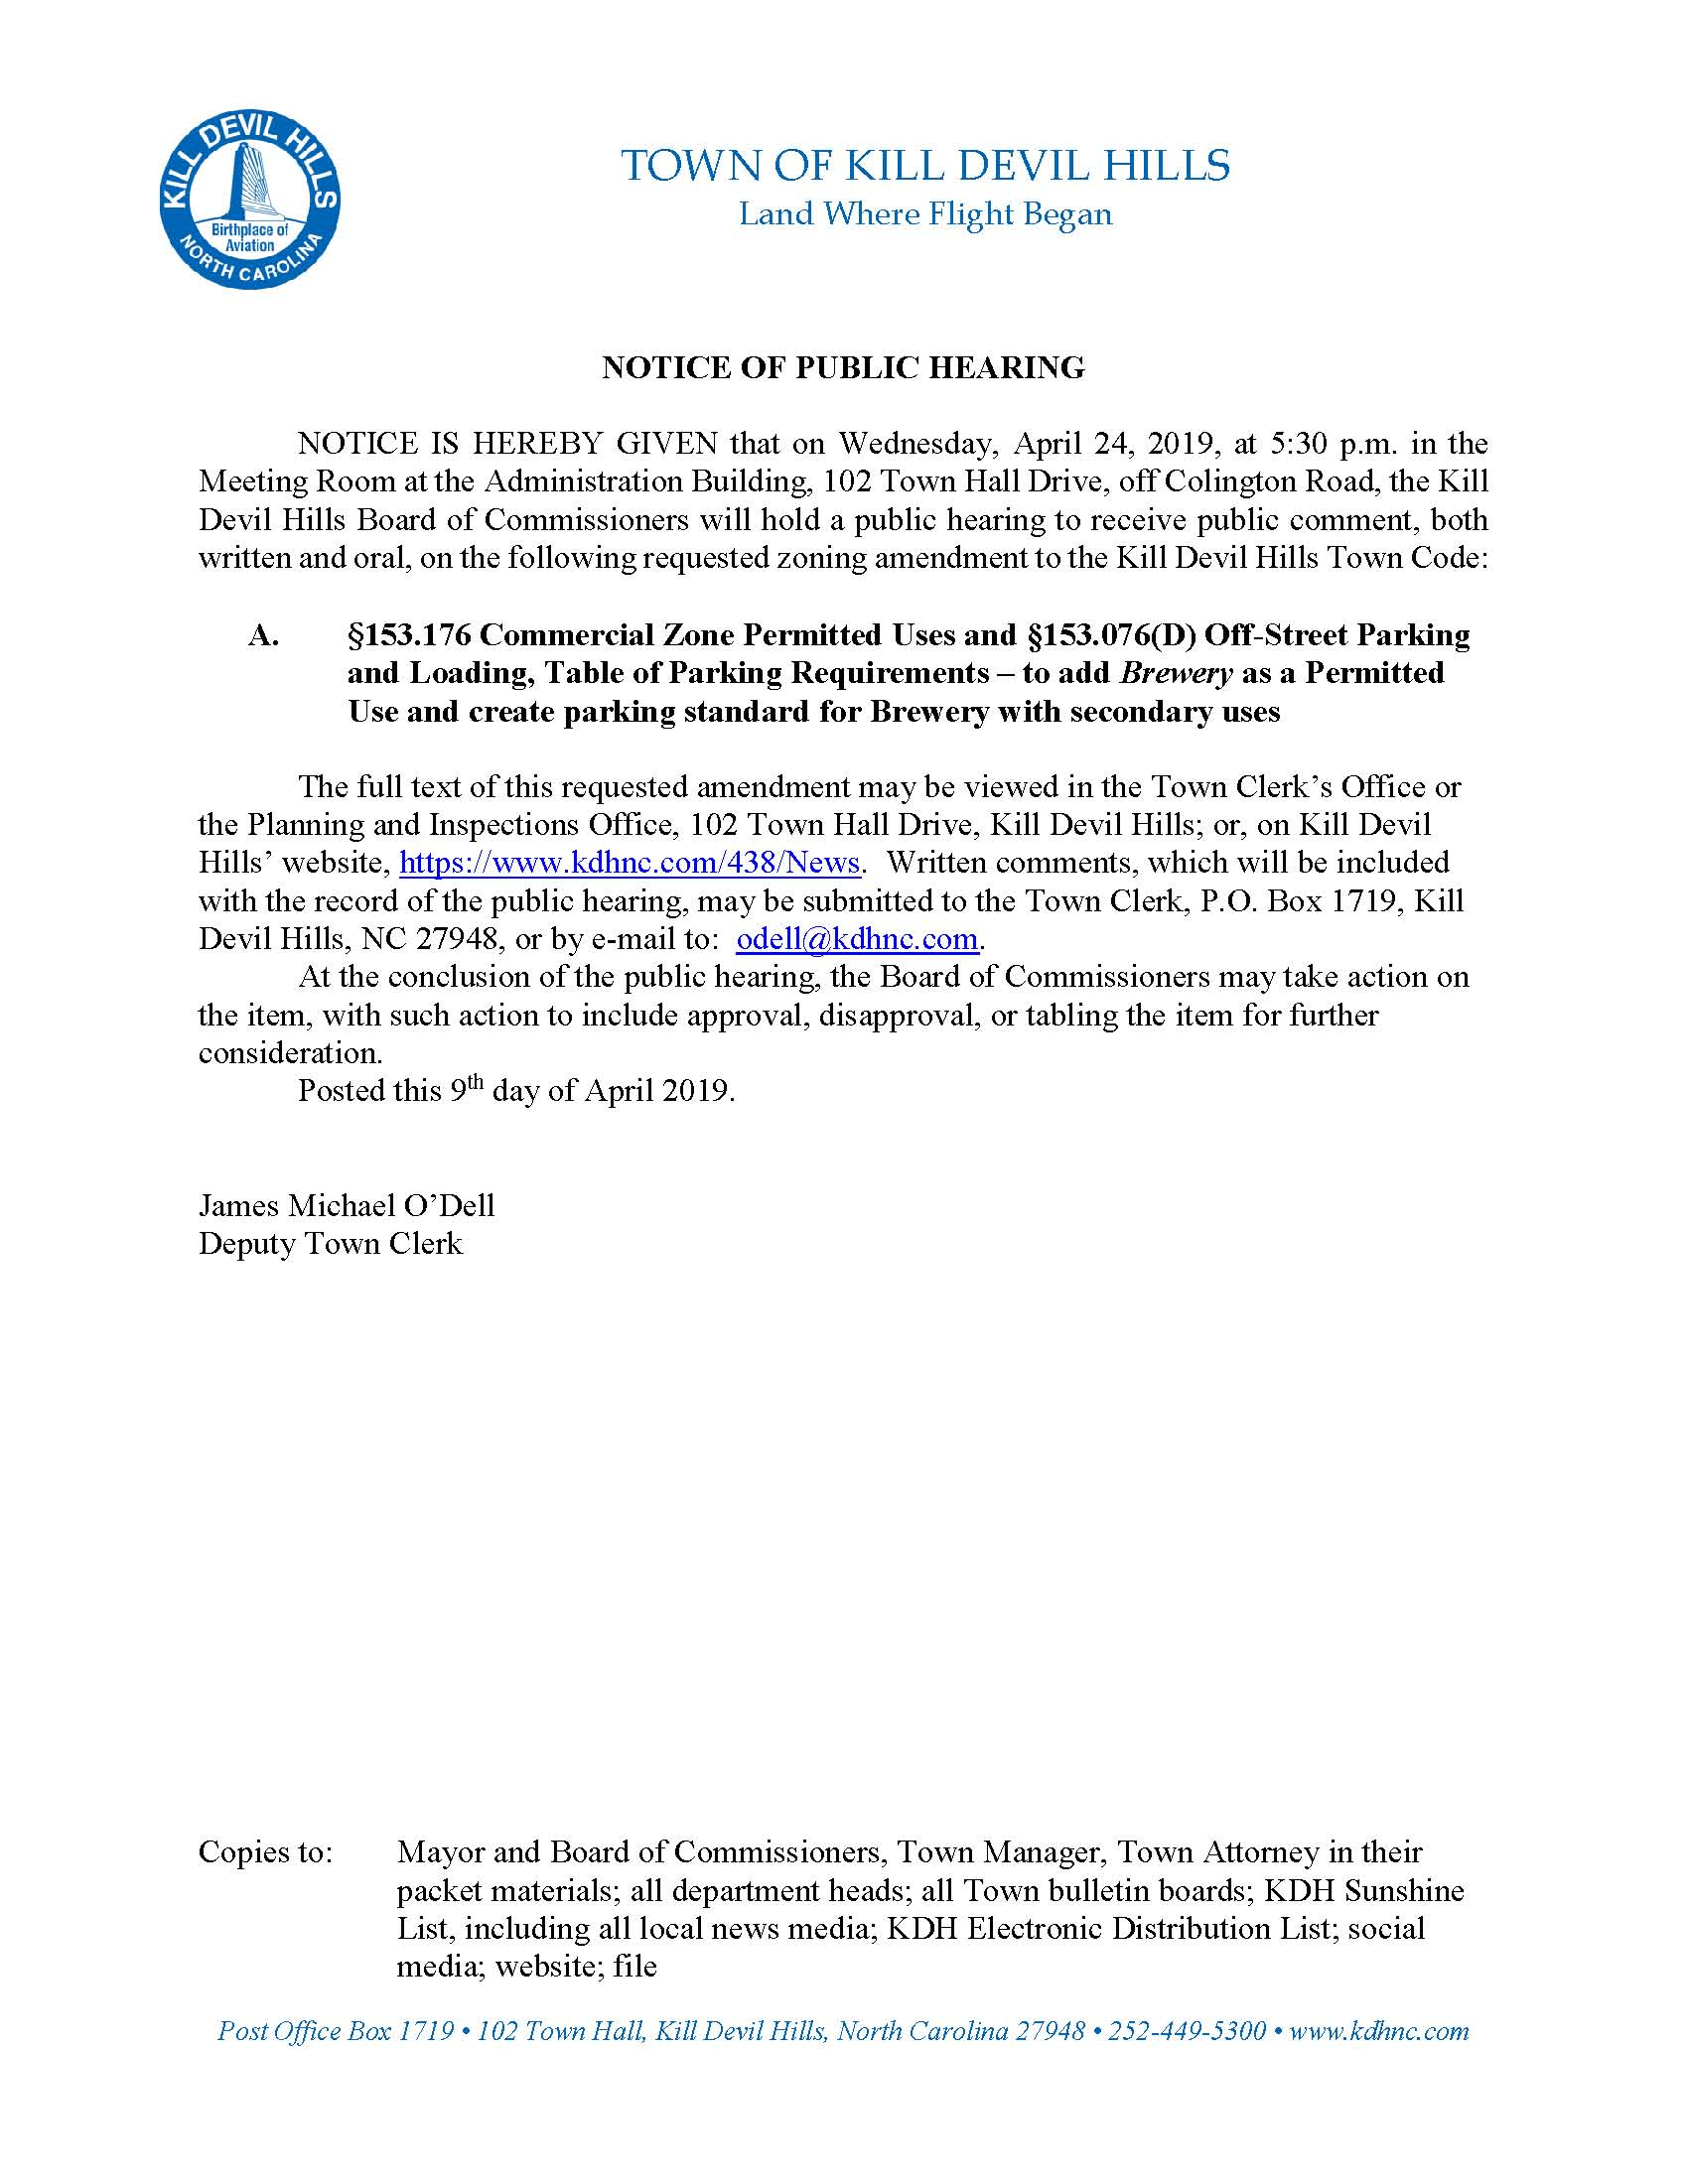 4.24.2019 Kill Devil Hills Board of Commissioners CZPU Public Hearing Notice